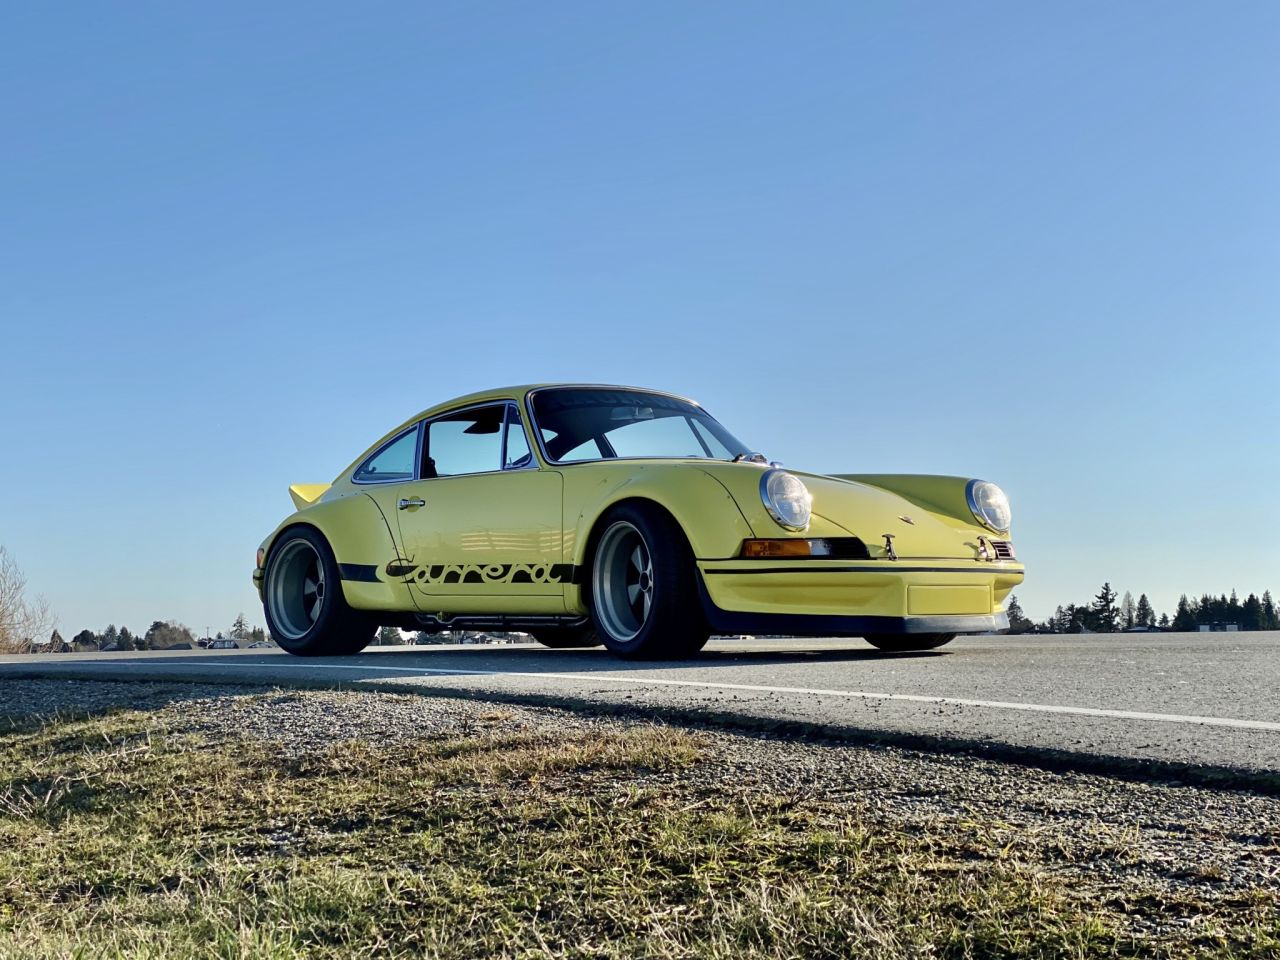 Porsche 911 Carrera 3.2 by RWB - Backdating extra large ! 41